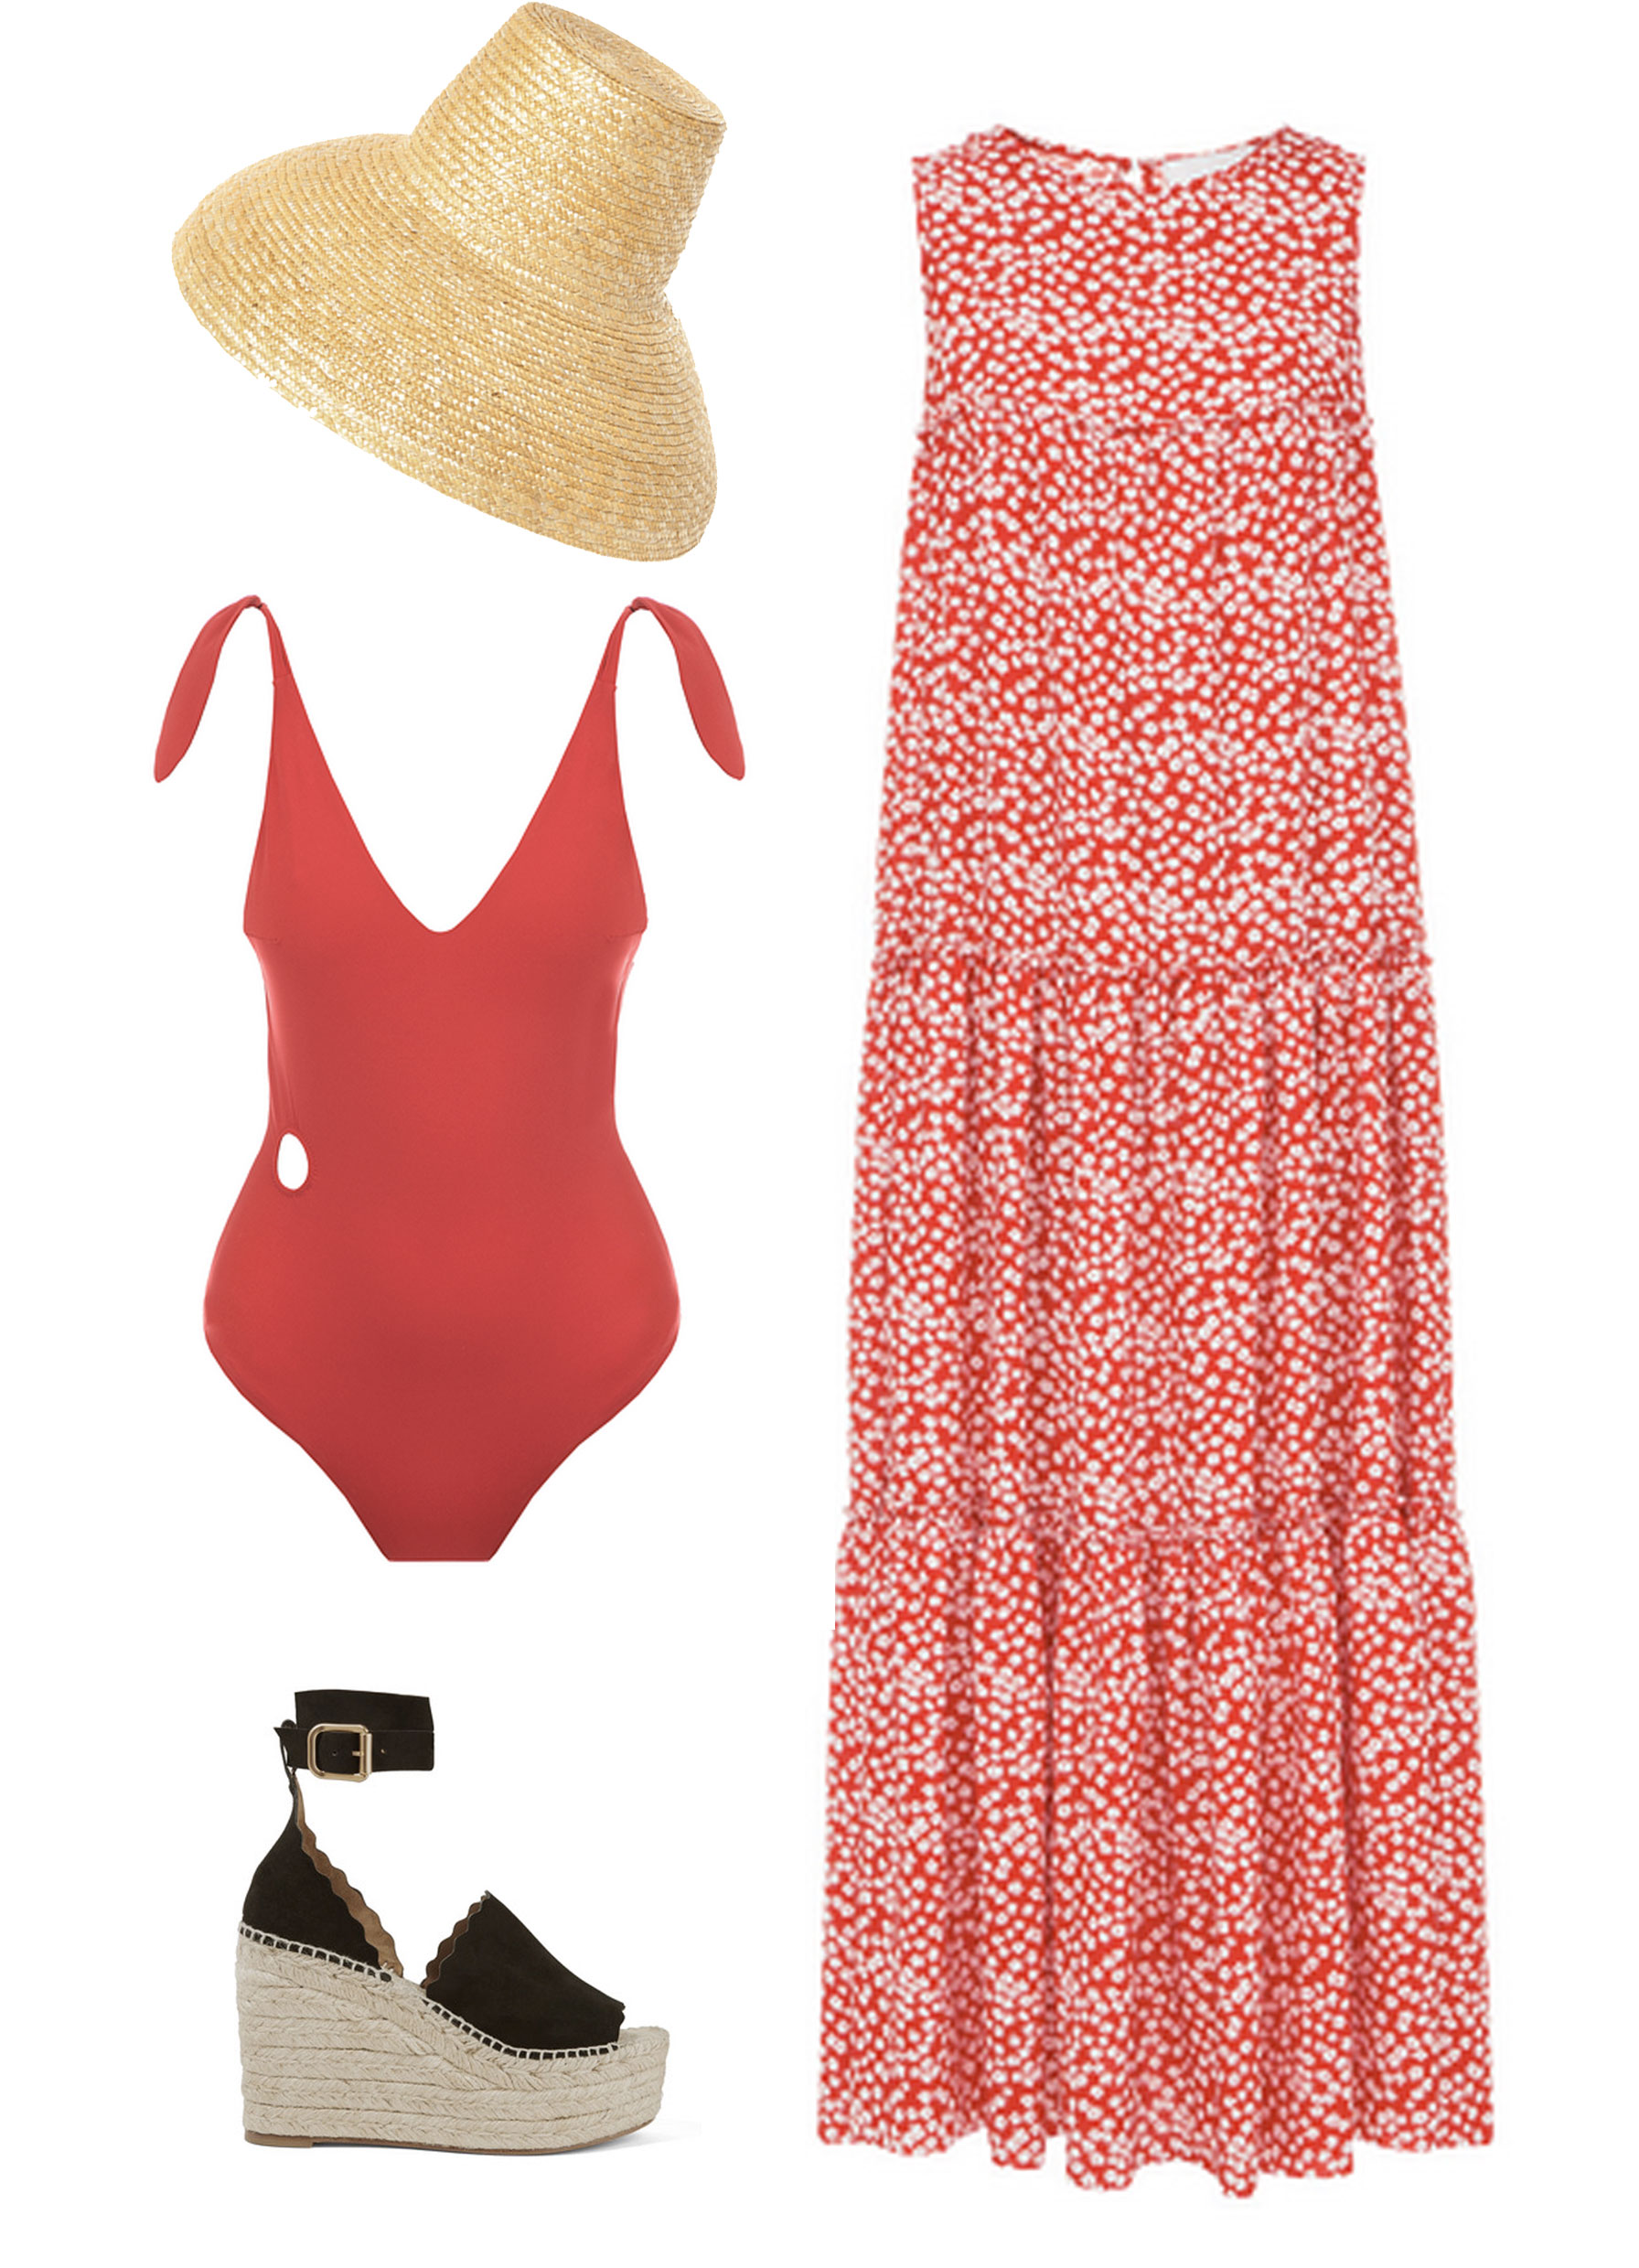 Three comfortable outfits  for summer rest near the sea and in the city